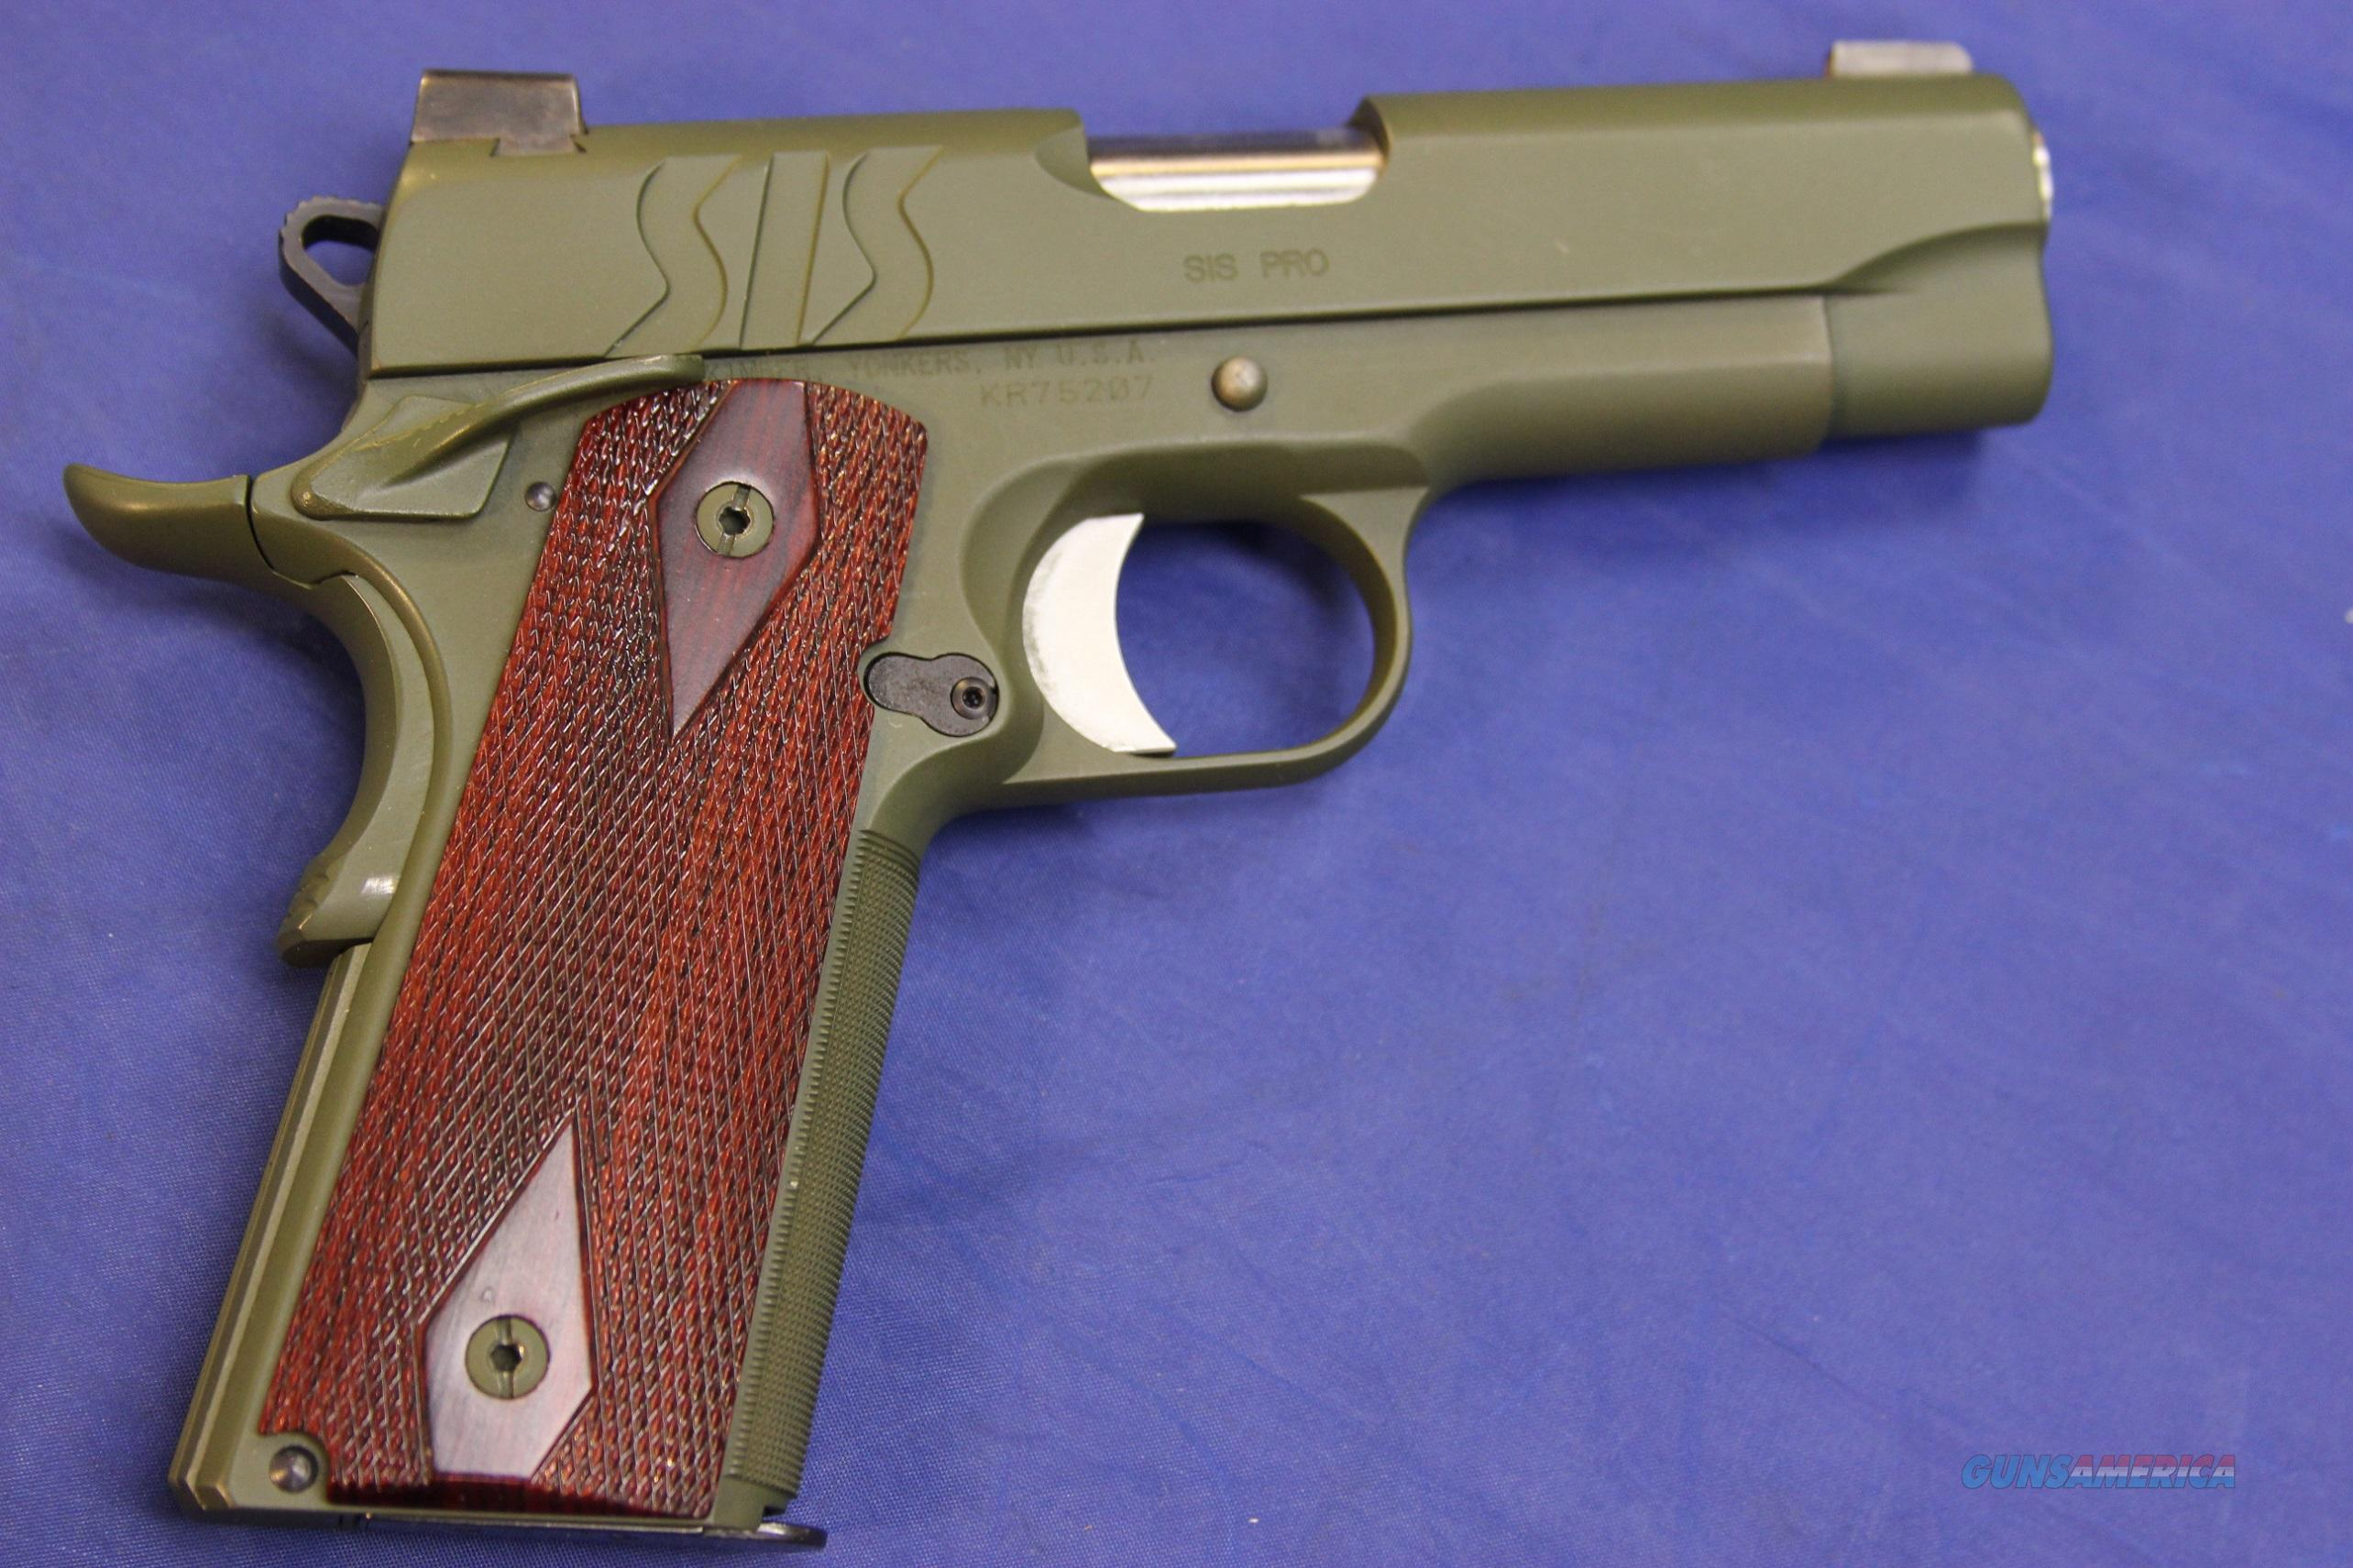 KIMBER 1911 SIS PRO OD GREEN .45 ACP - Custom Finish  Guns > Pistols > Kimber of America Pistols